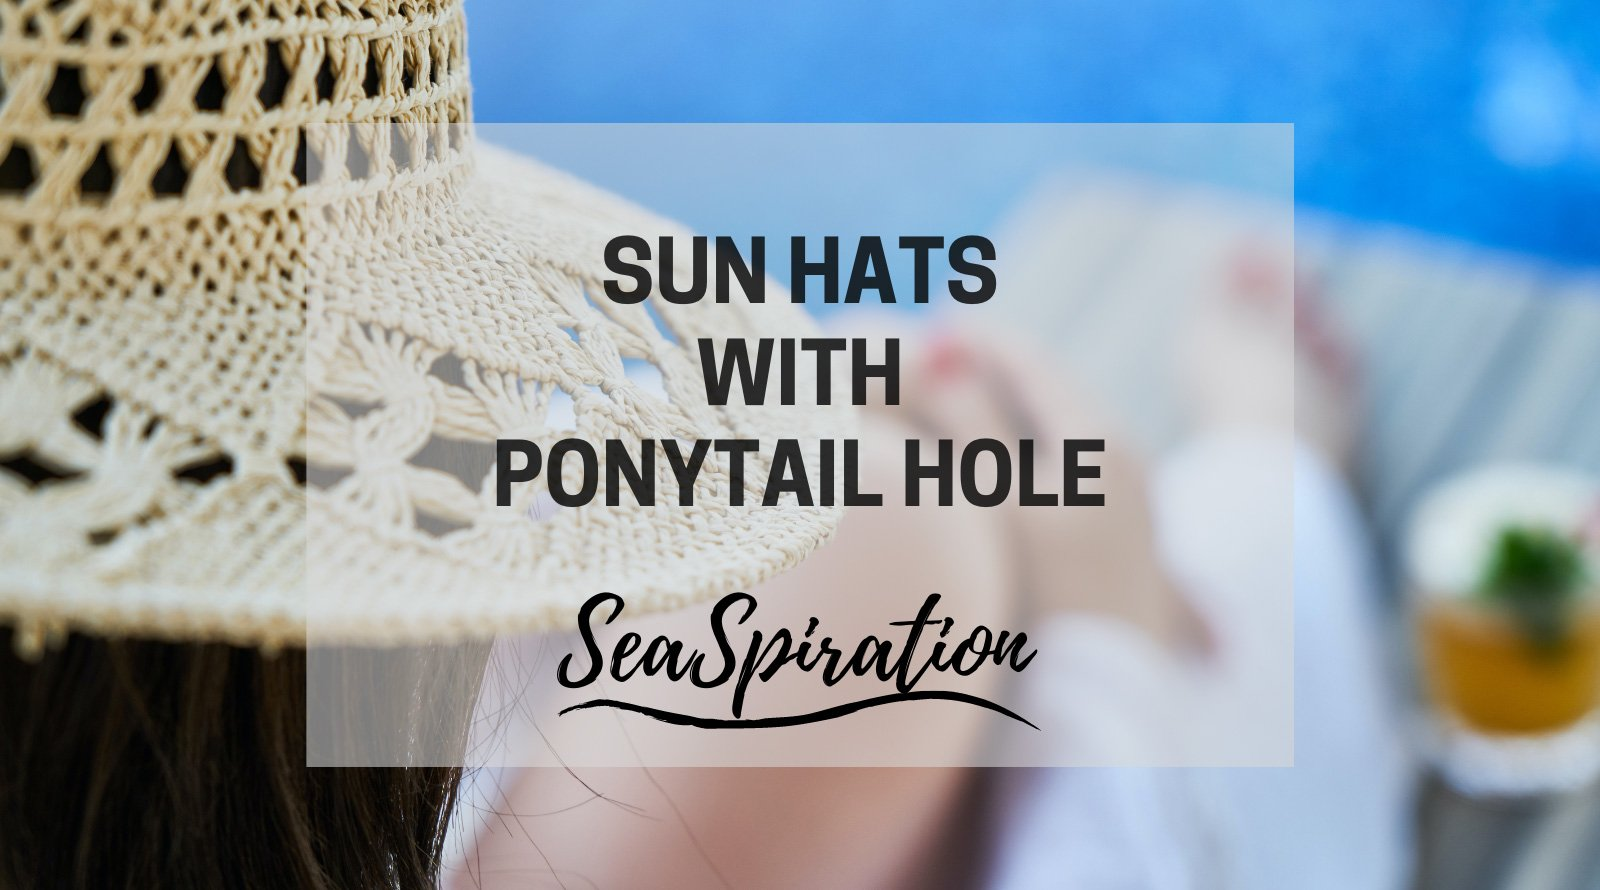 Sun hat with hole on top for ponytail